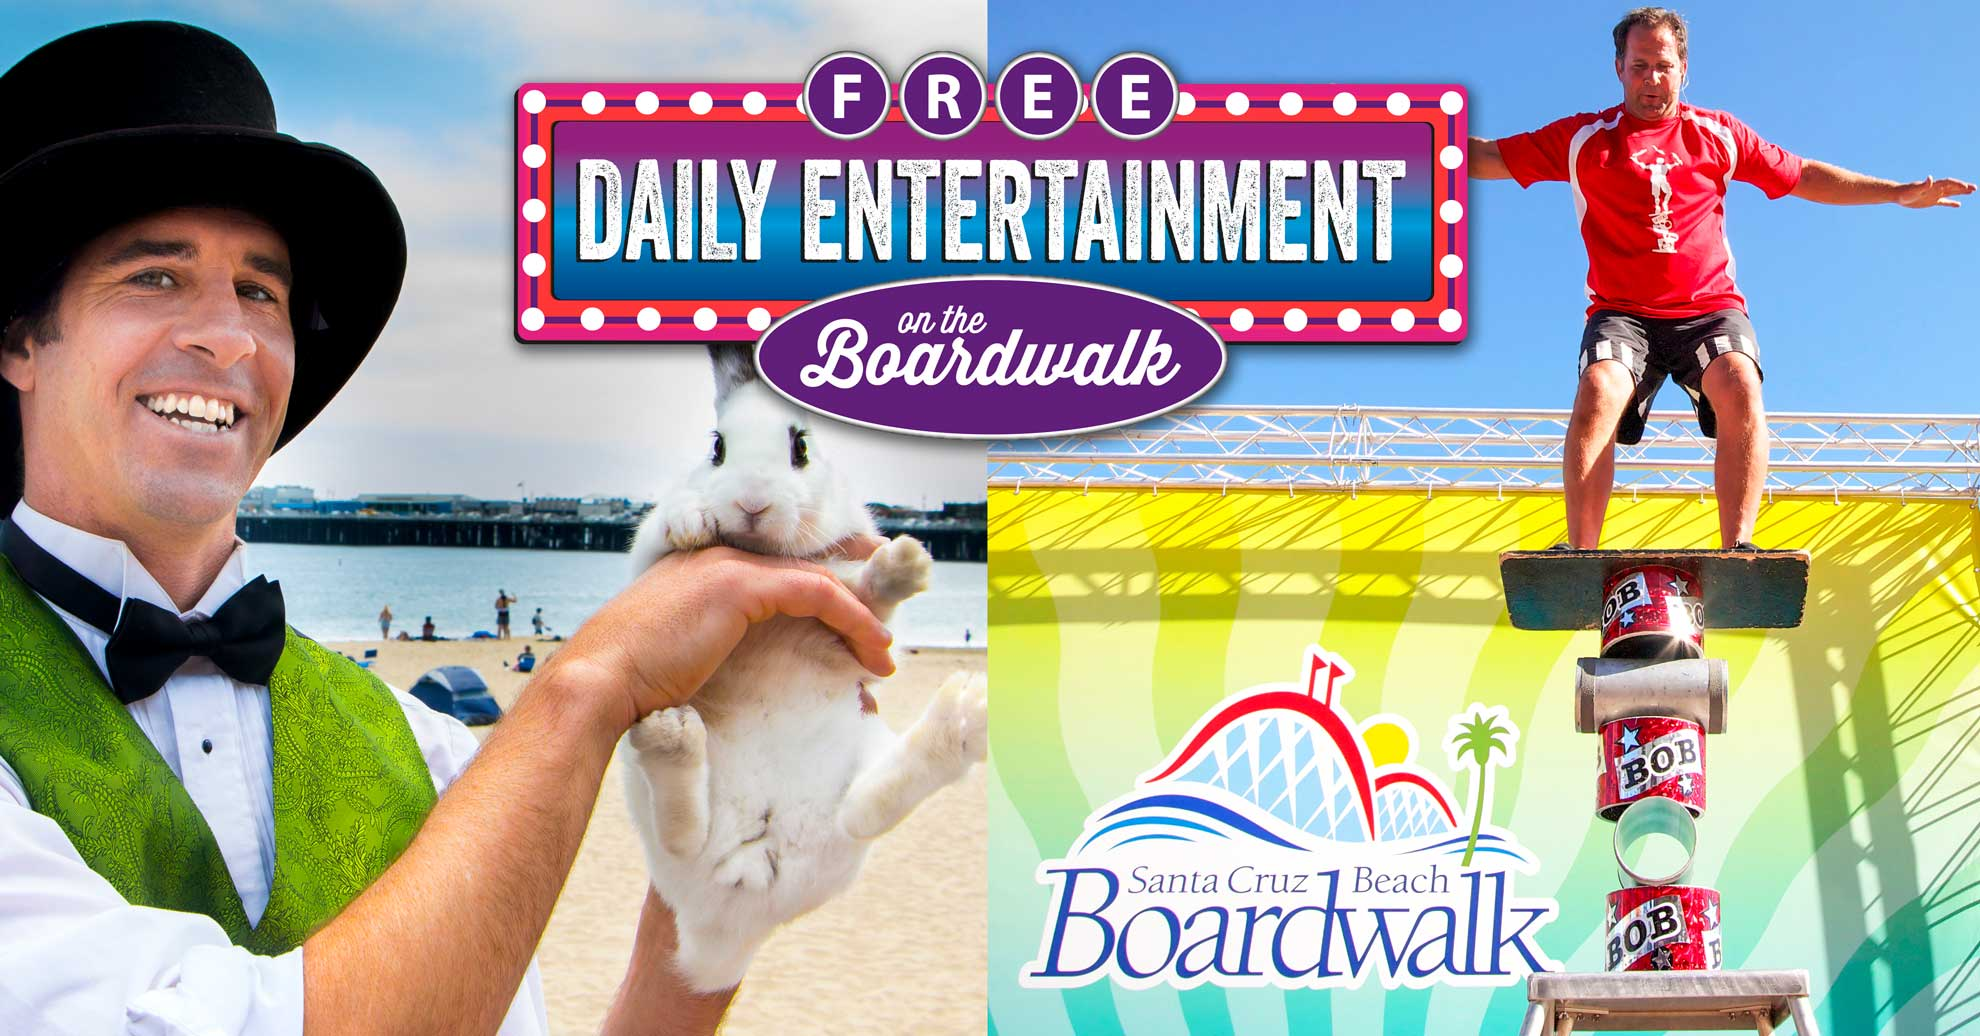 FREE Daily Entertainment